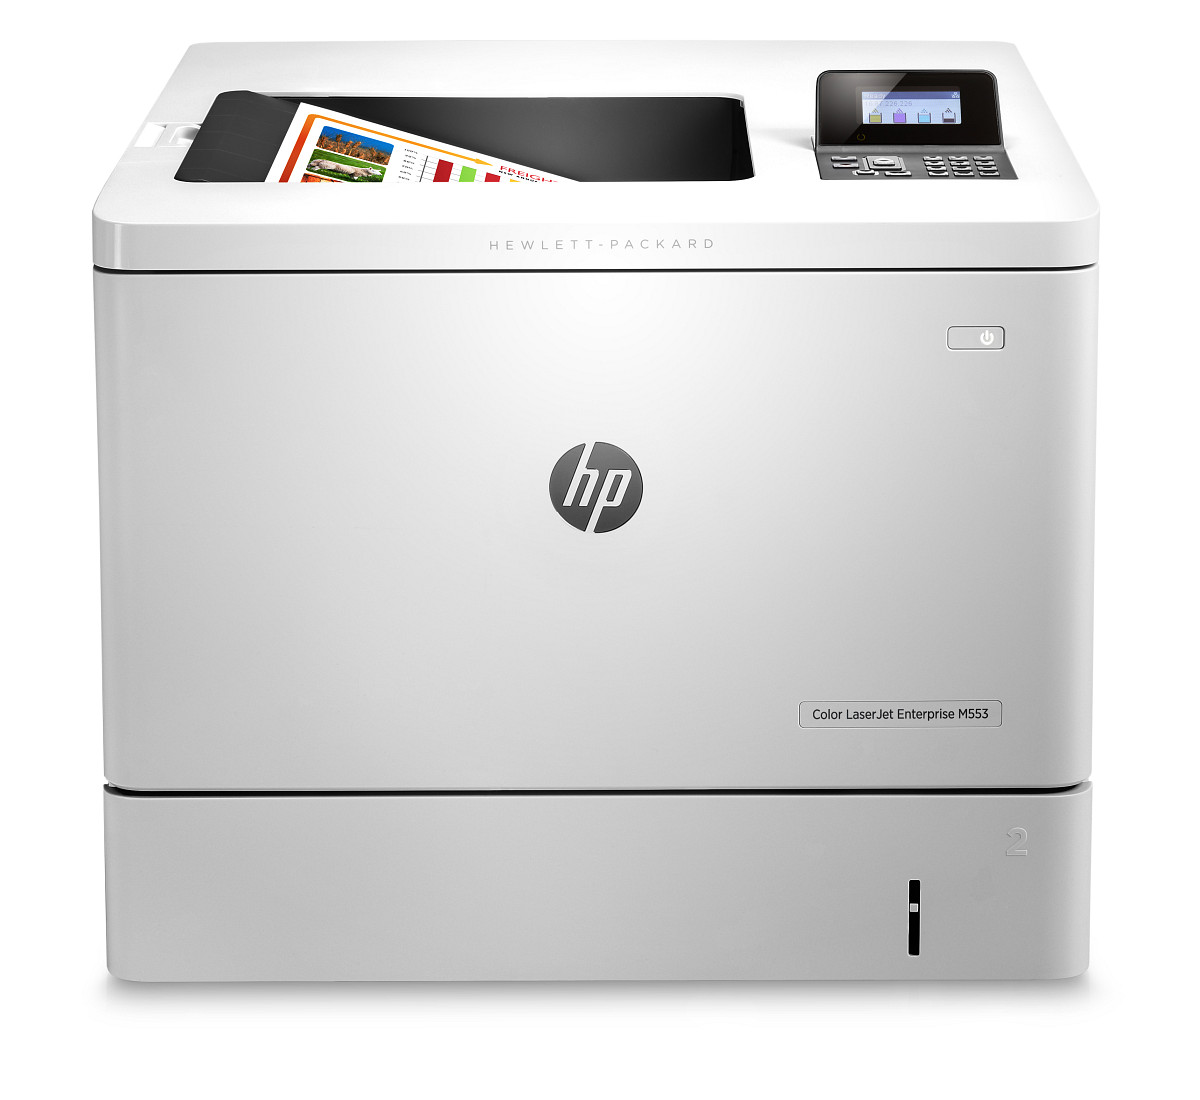 Tiskárna HP Color LJ Enterprise M553dn